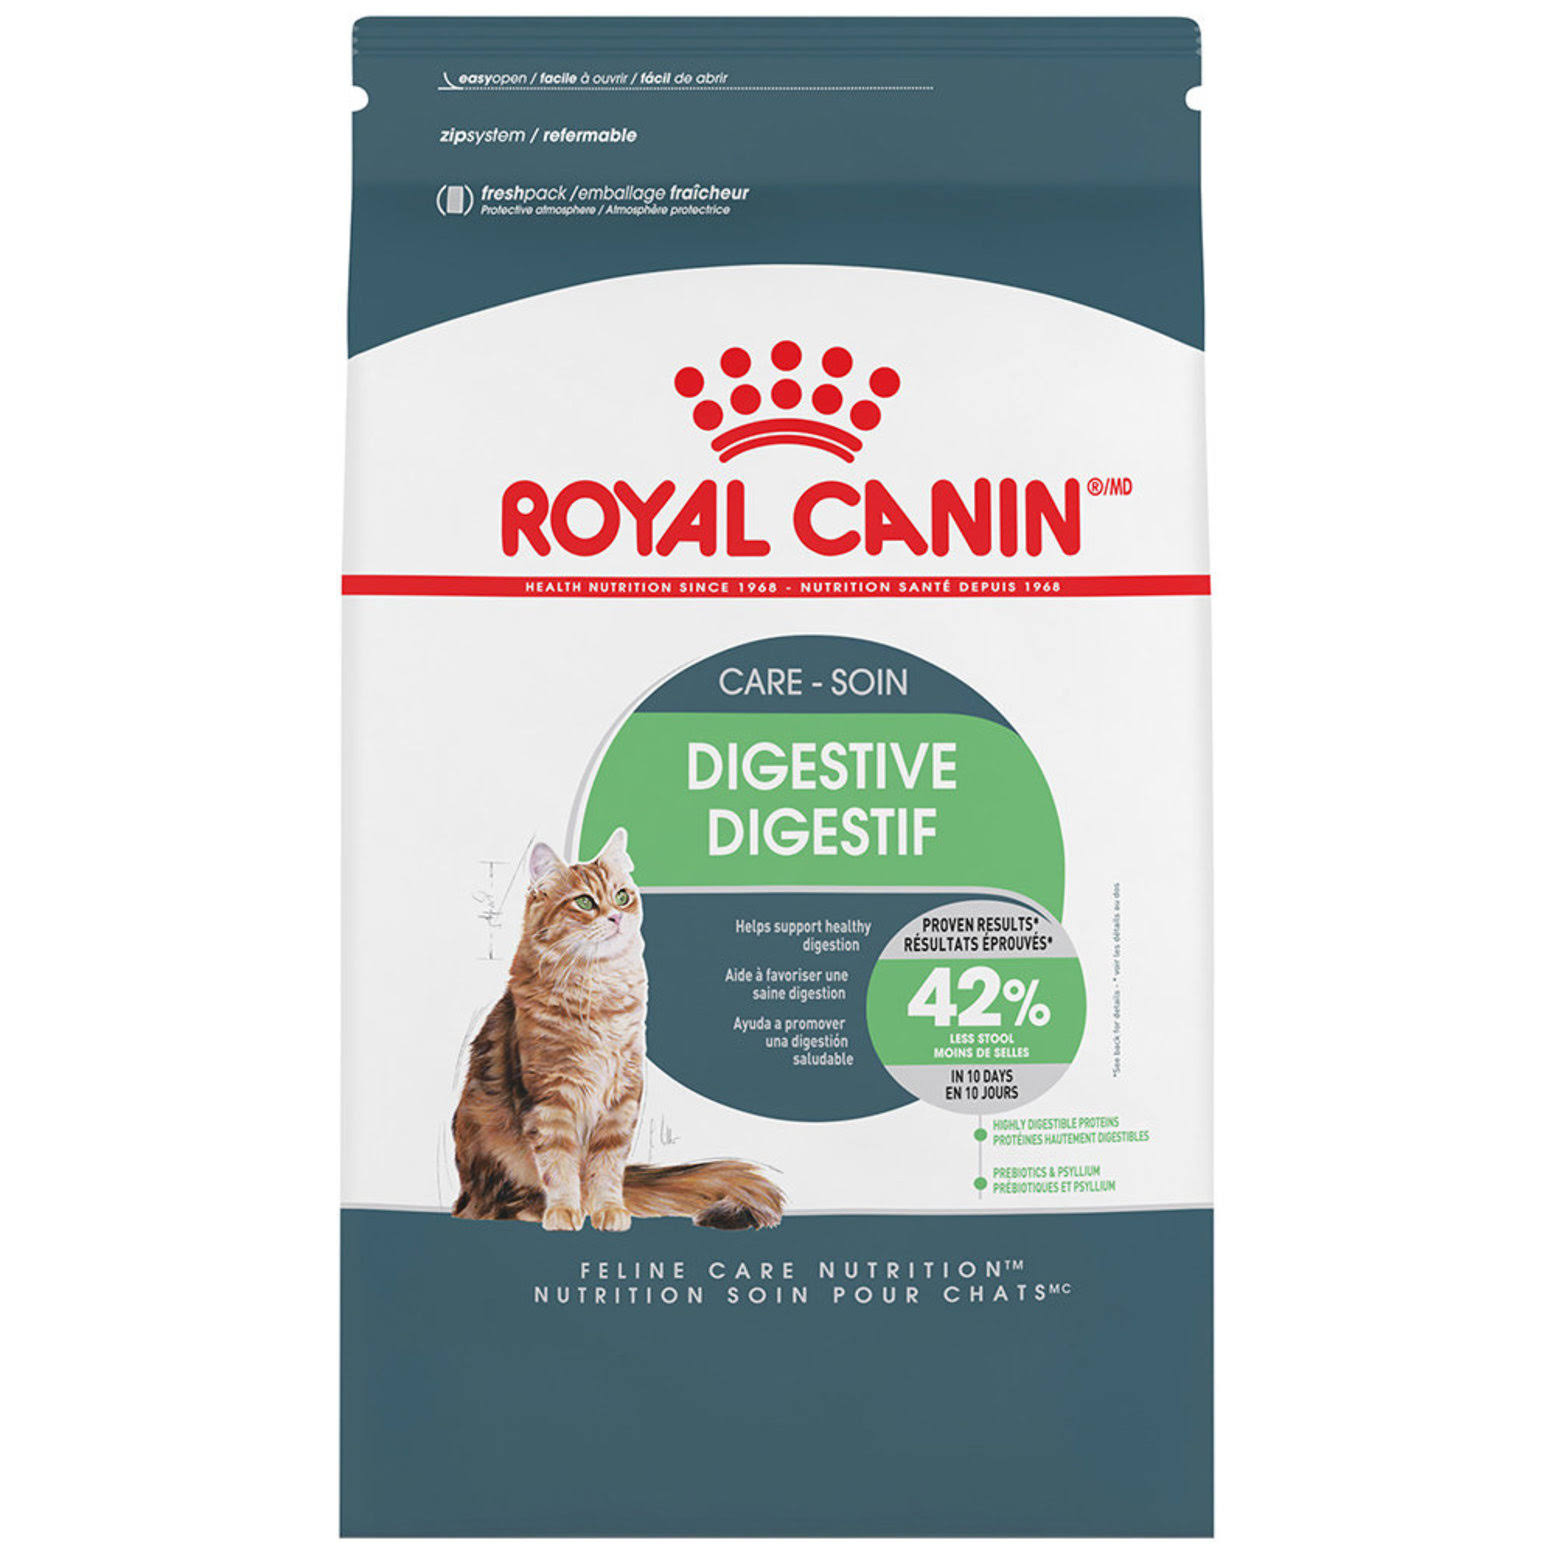 Royal Canin Digestive Care Cat Food - Chicken, 3lbs